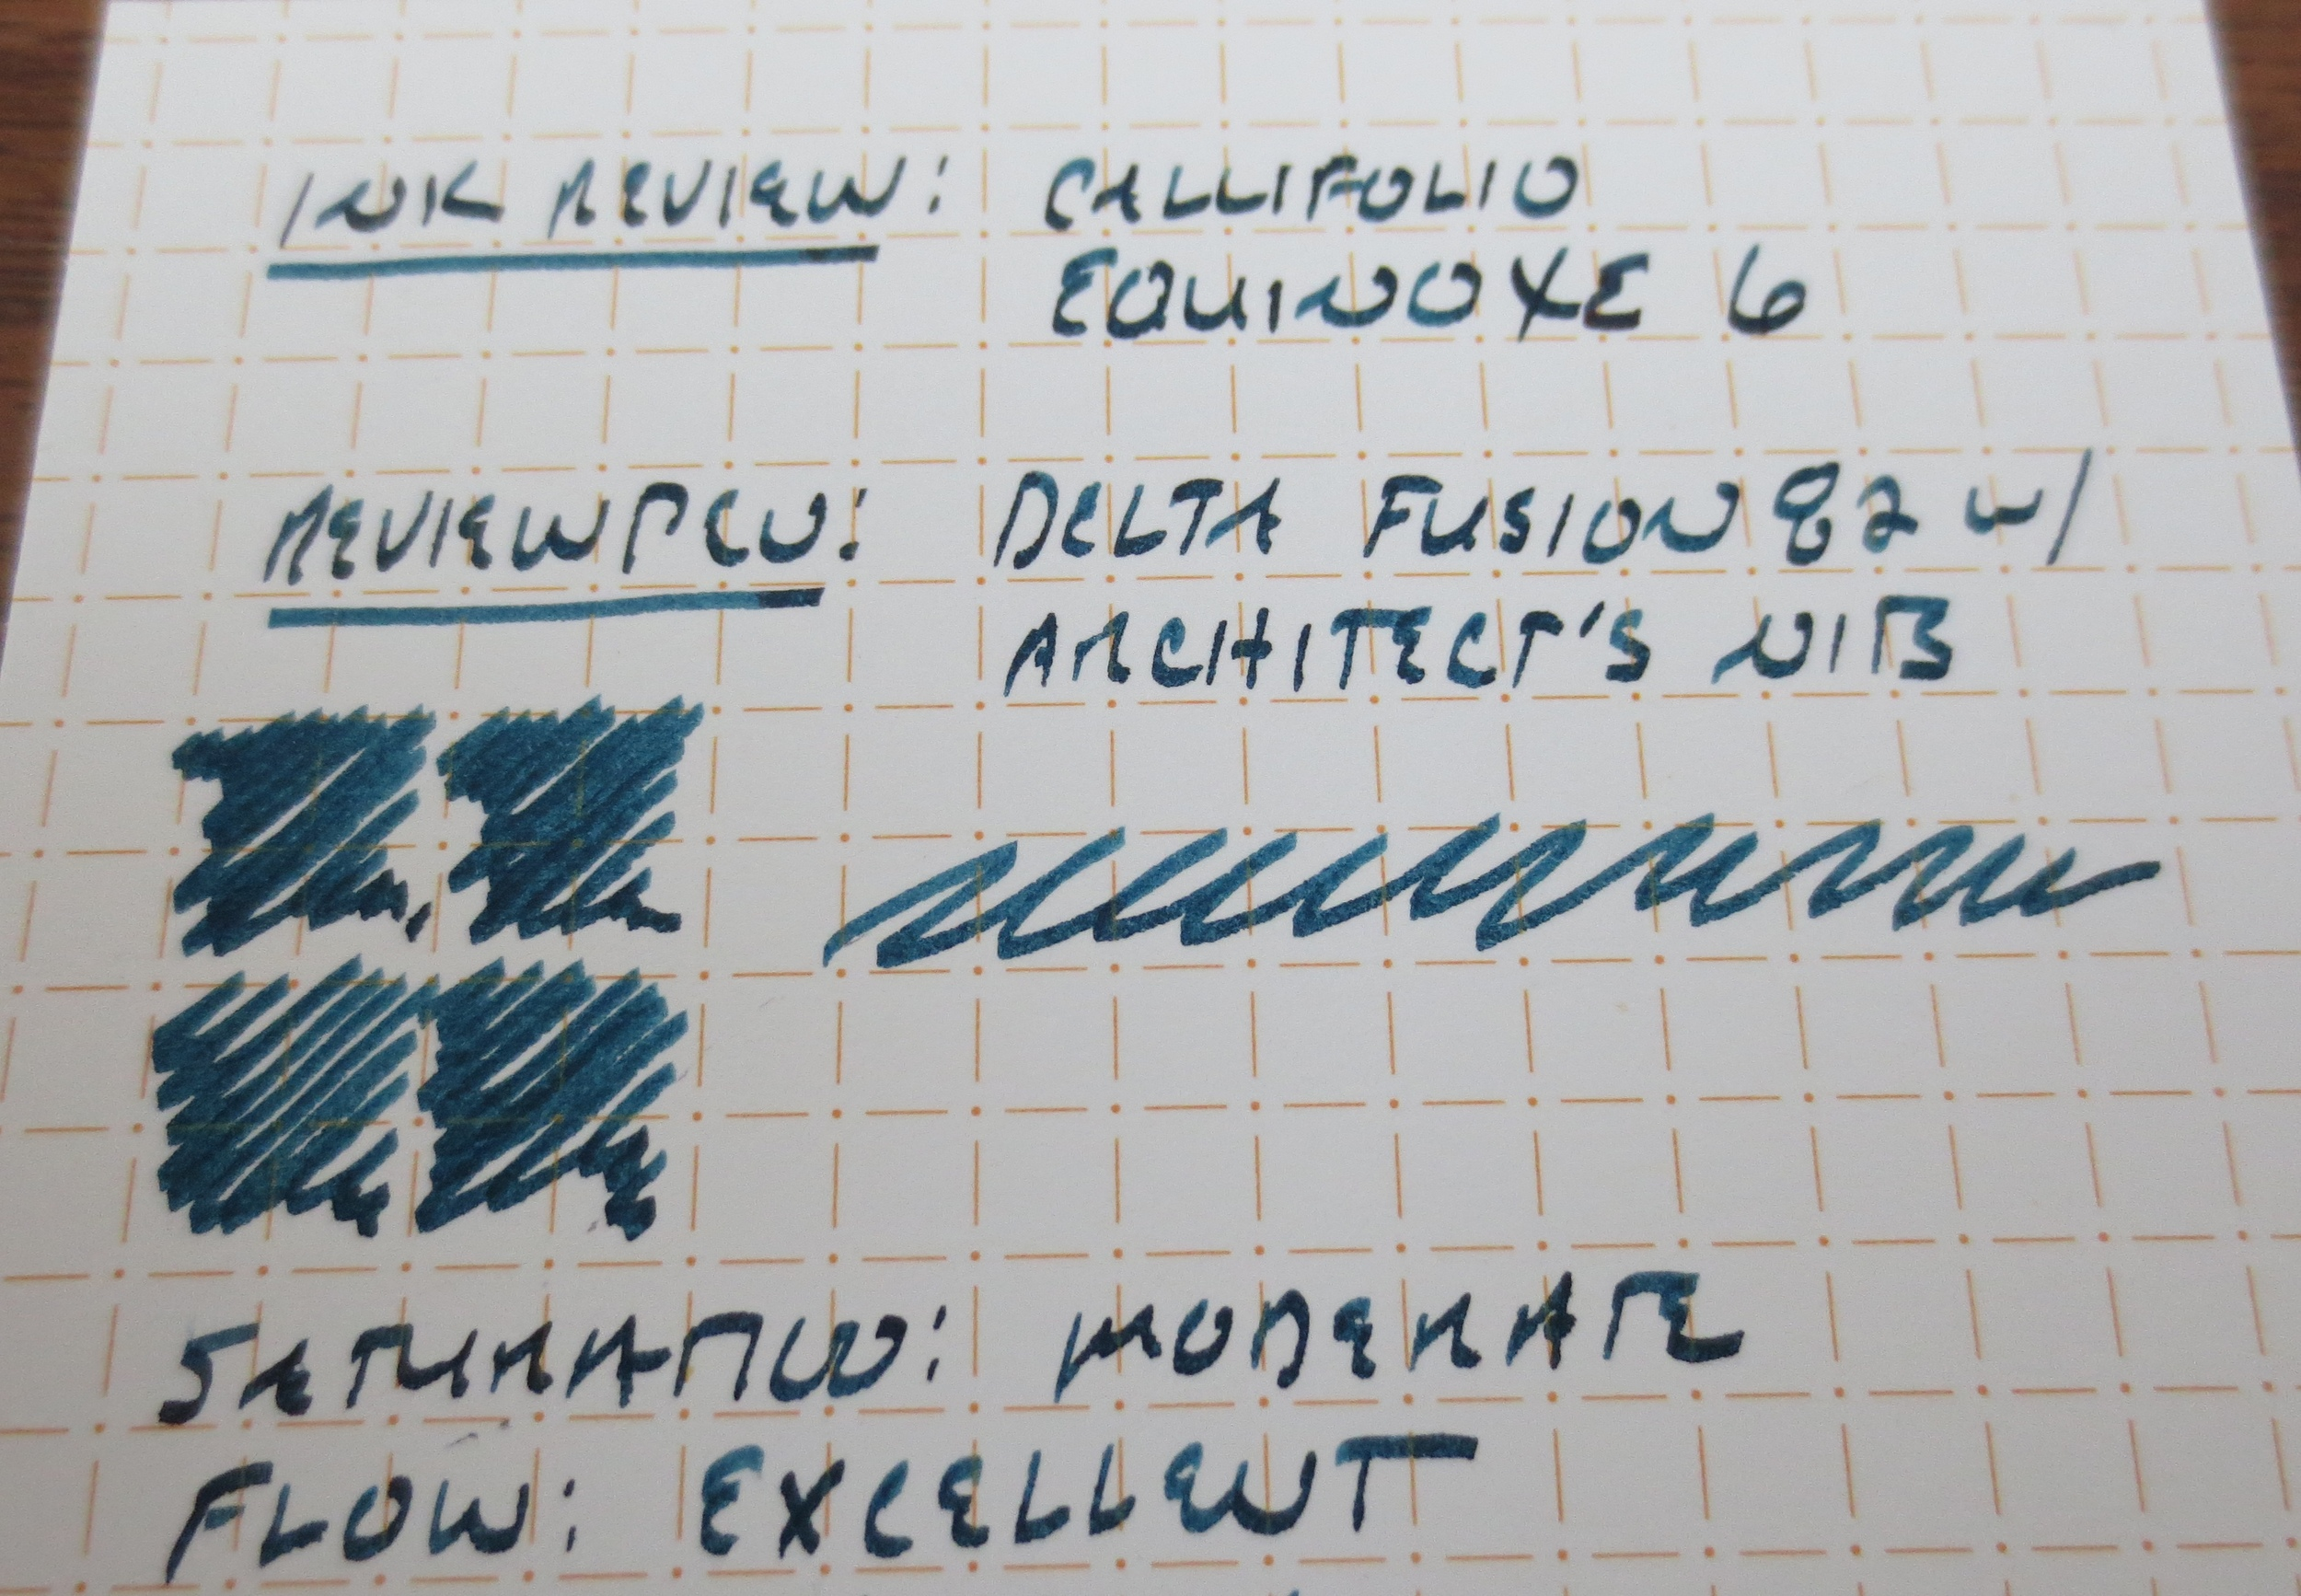 Callifolio Equinoxe 6 writing sample.